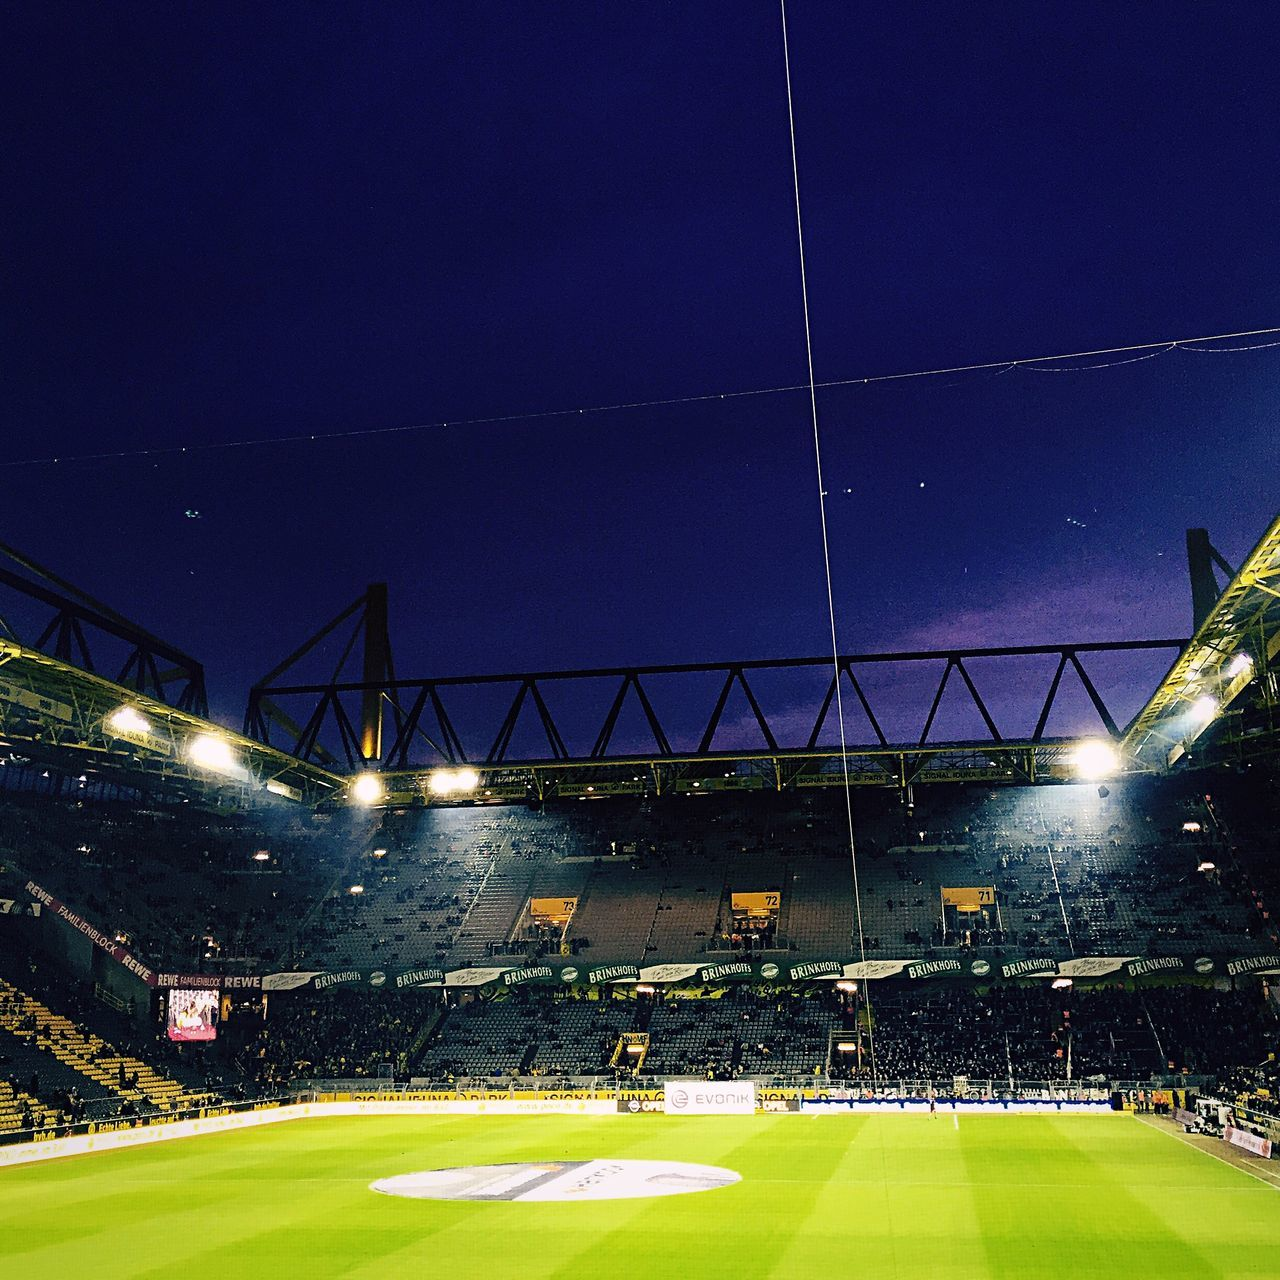 The Color Of Sport Football Sport Sports Sports Photography Soccer Borussia Dortmund Dortmund Fussball Supercup Low Angle View Night Sky Outdoors My Favorite Place Colorful